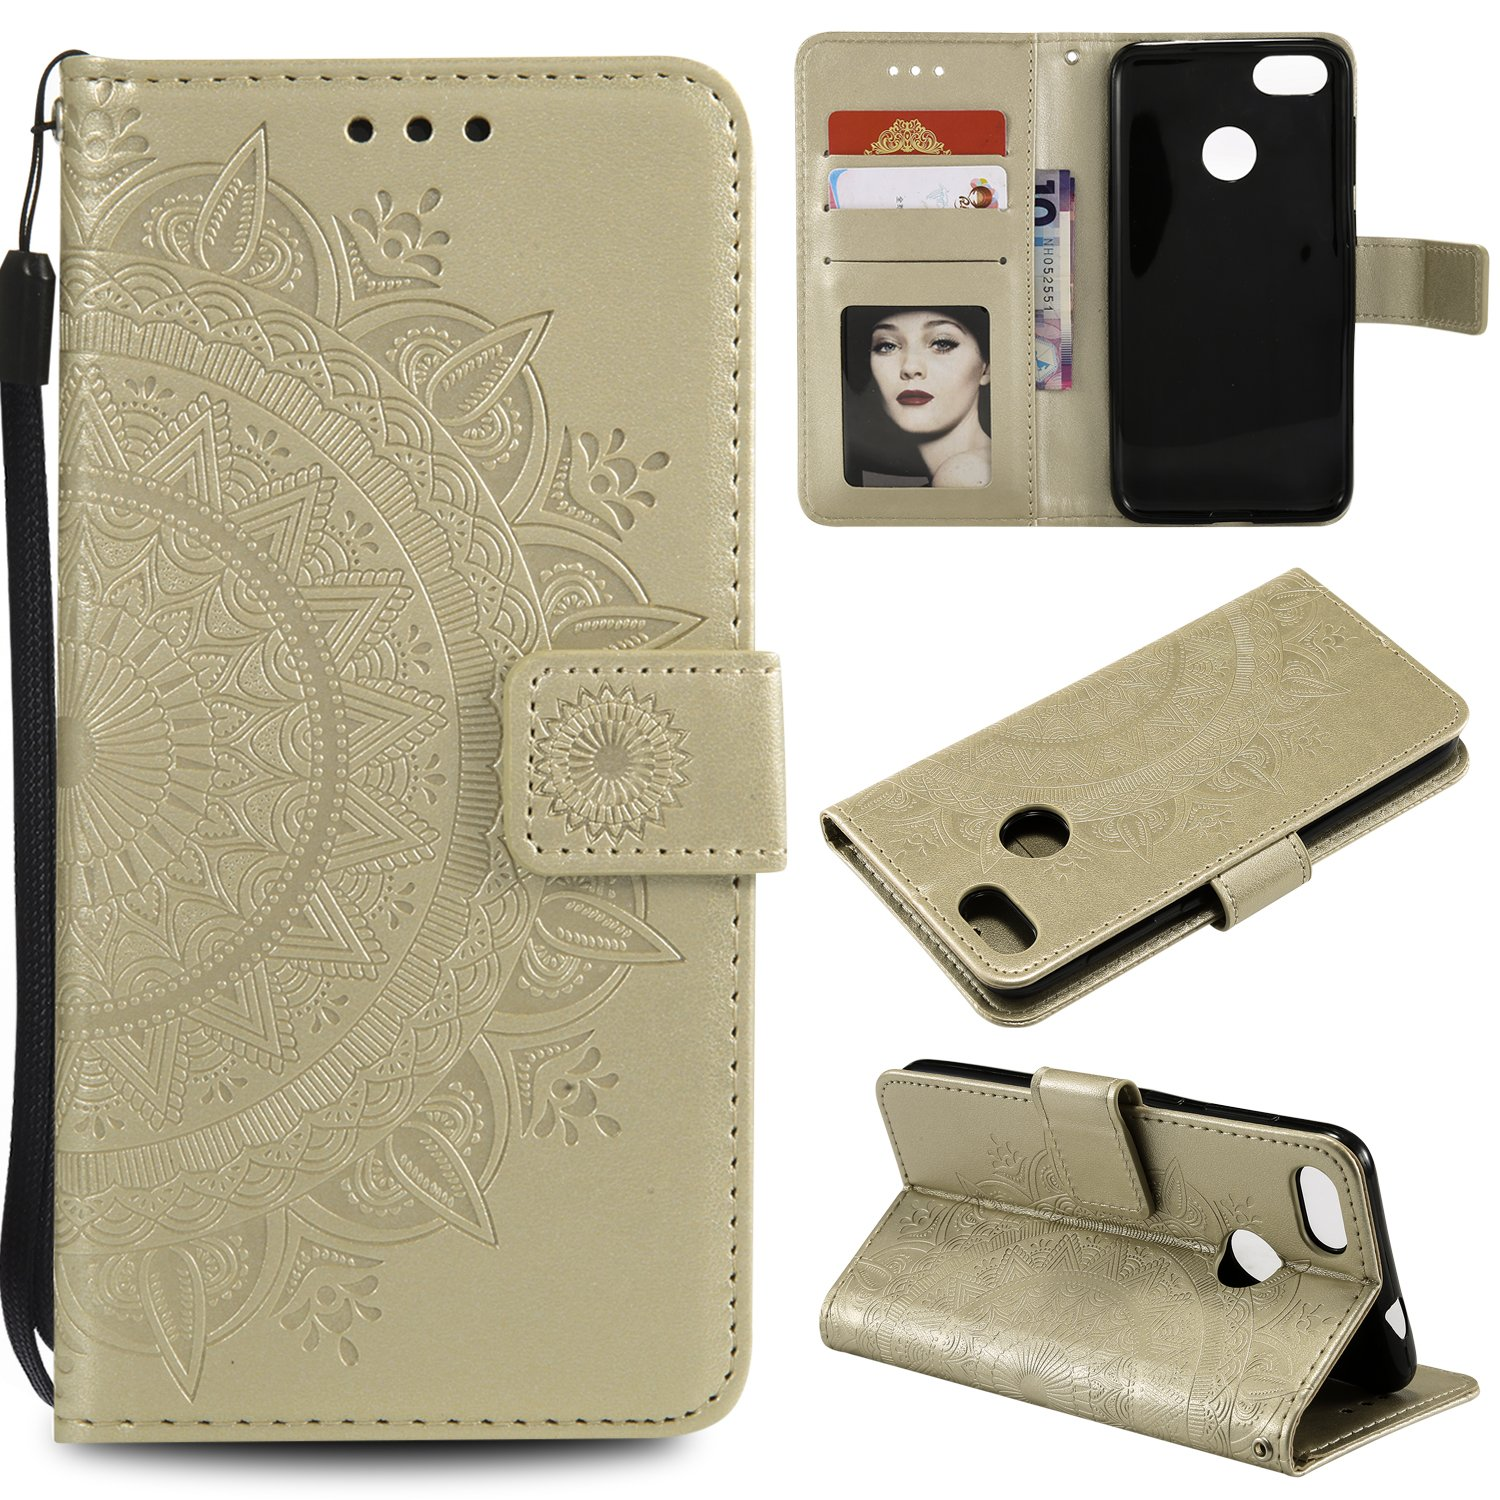 Floral Wallet Case for Huawei P9 Lite Mini,Strap Flip Case for Huawei P9 Lite Mini,Leecase Embossed Totem Flower Design Pu Leather Bookstyle Stand Flip Case for Huawei P9 Lite Mini-Gold